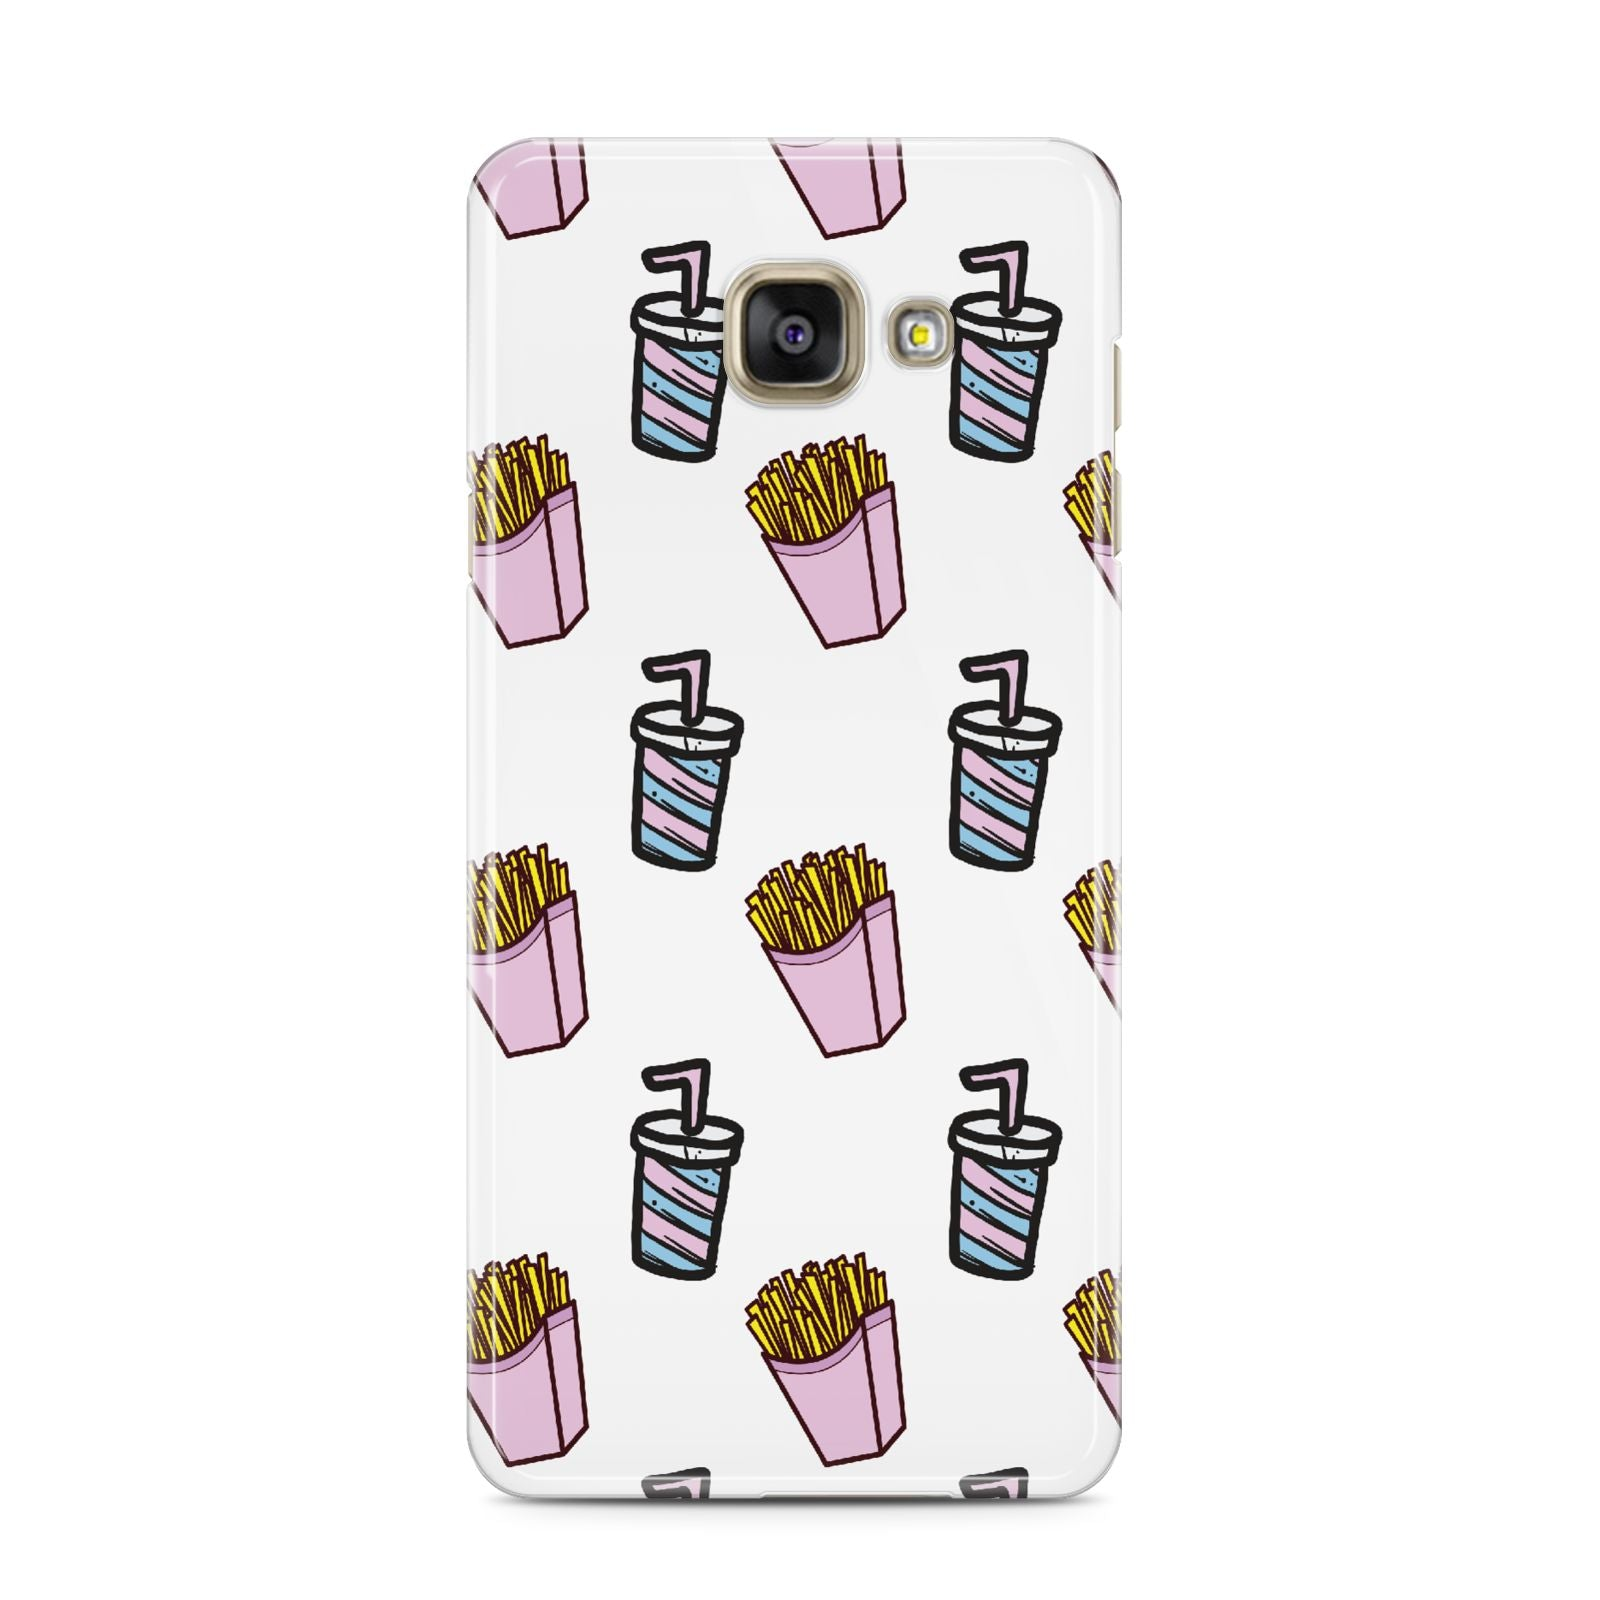 Fries Shake Fast Food Samsung Galaxy A3 2016 Case on gold phone